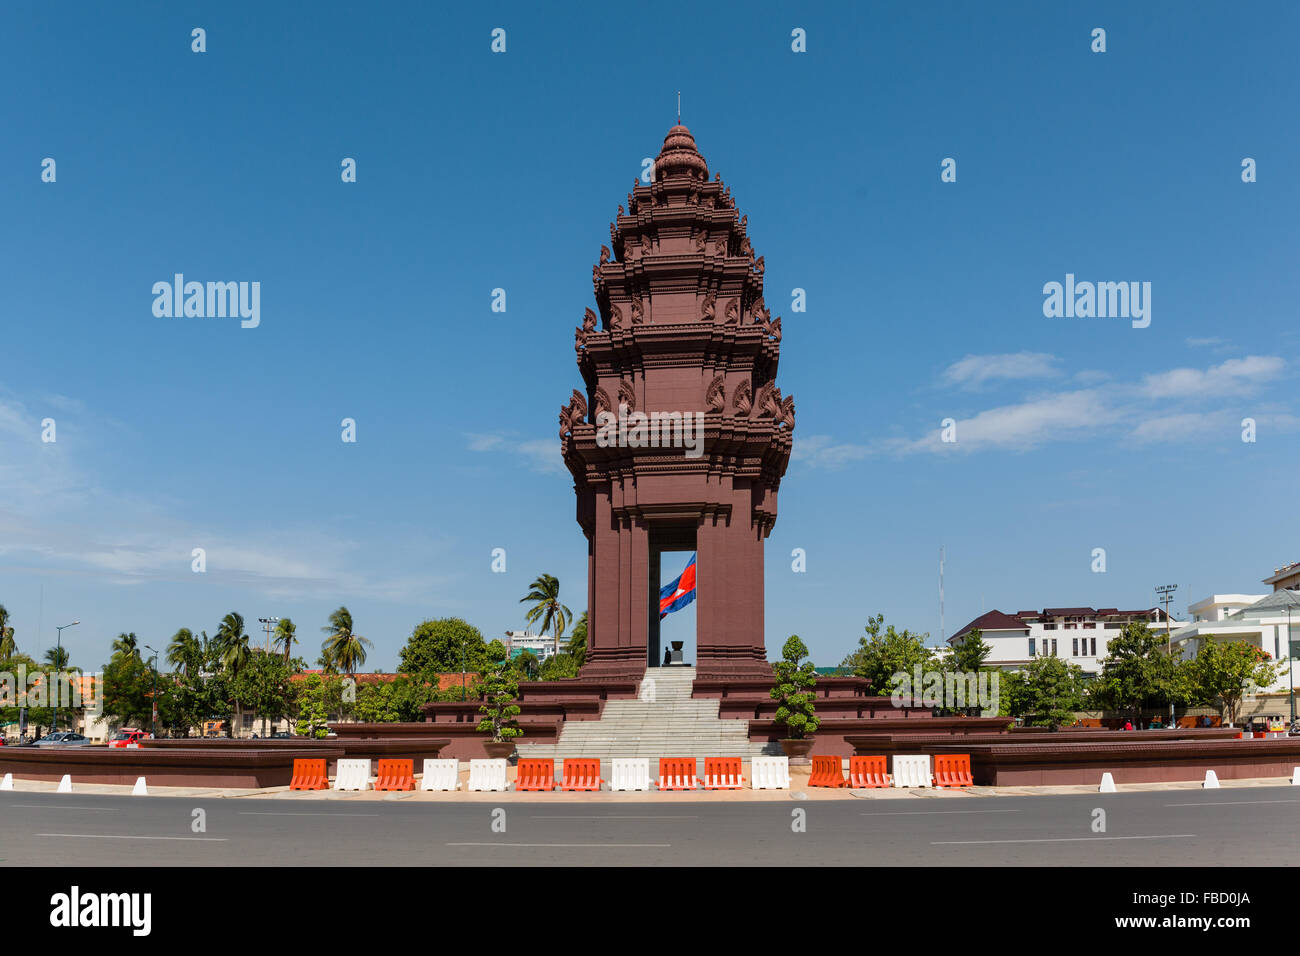 Roundabout at the Independence Monument, Phnom Penh, Cambodia - Stock Image